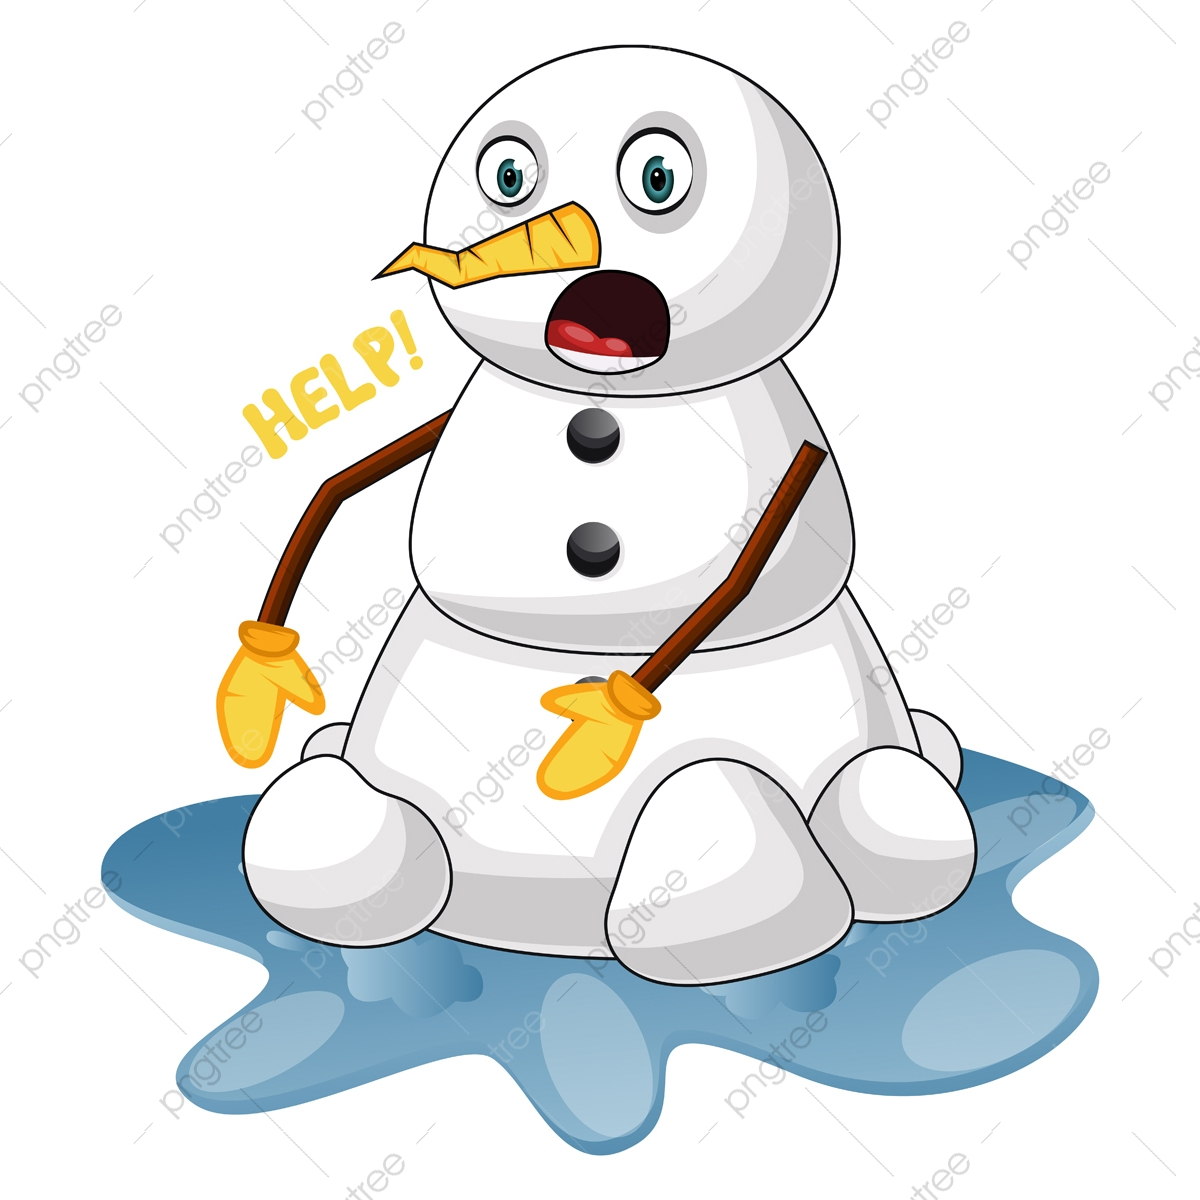 Melting Snowman Illustration Vector On White Background Decoration Graphic Man Png And Vector With Transparent Background For Free Download